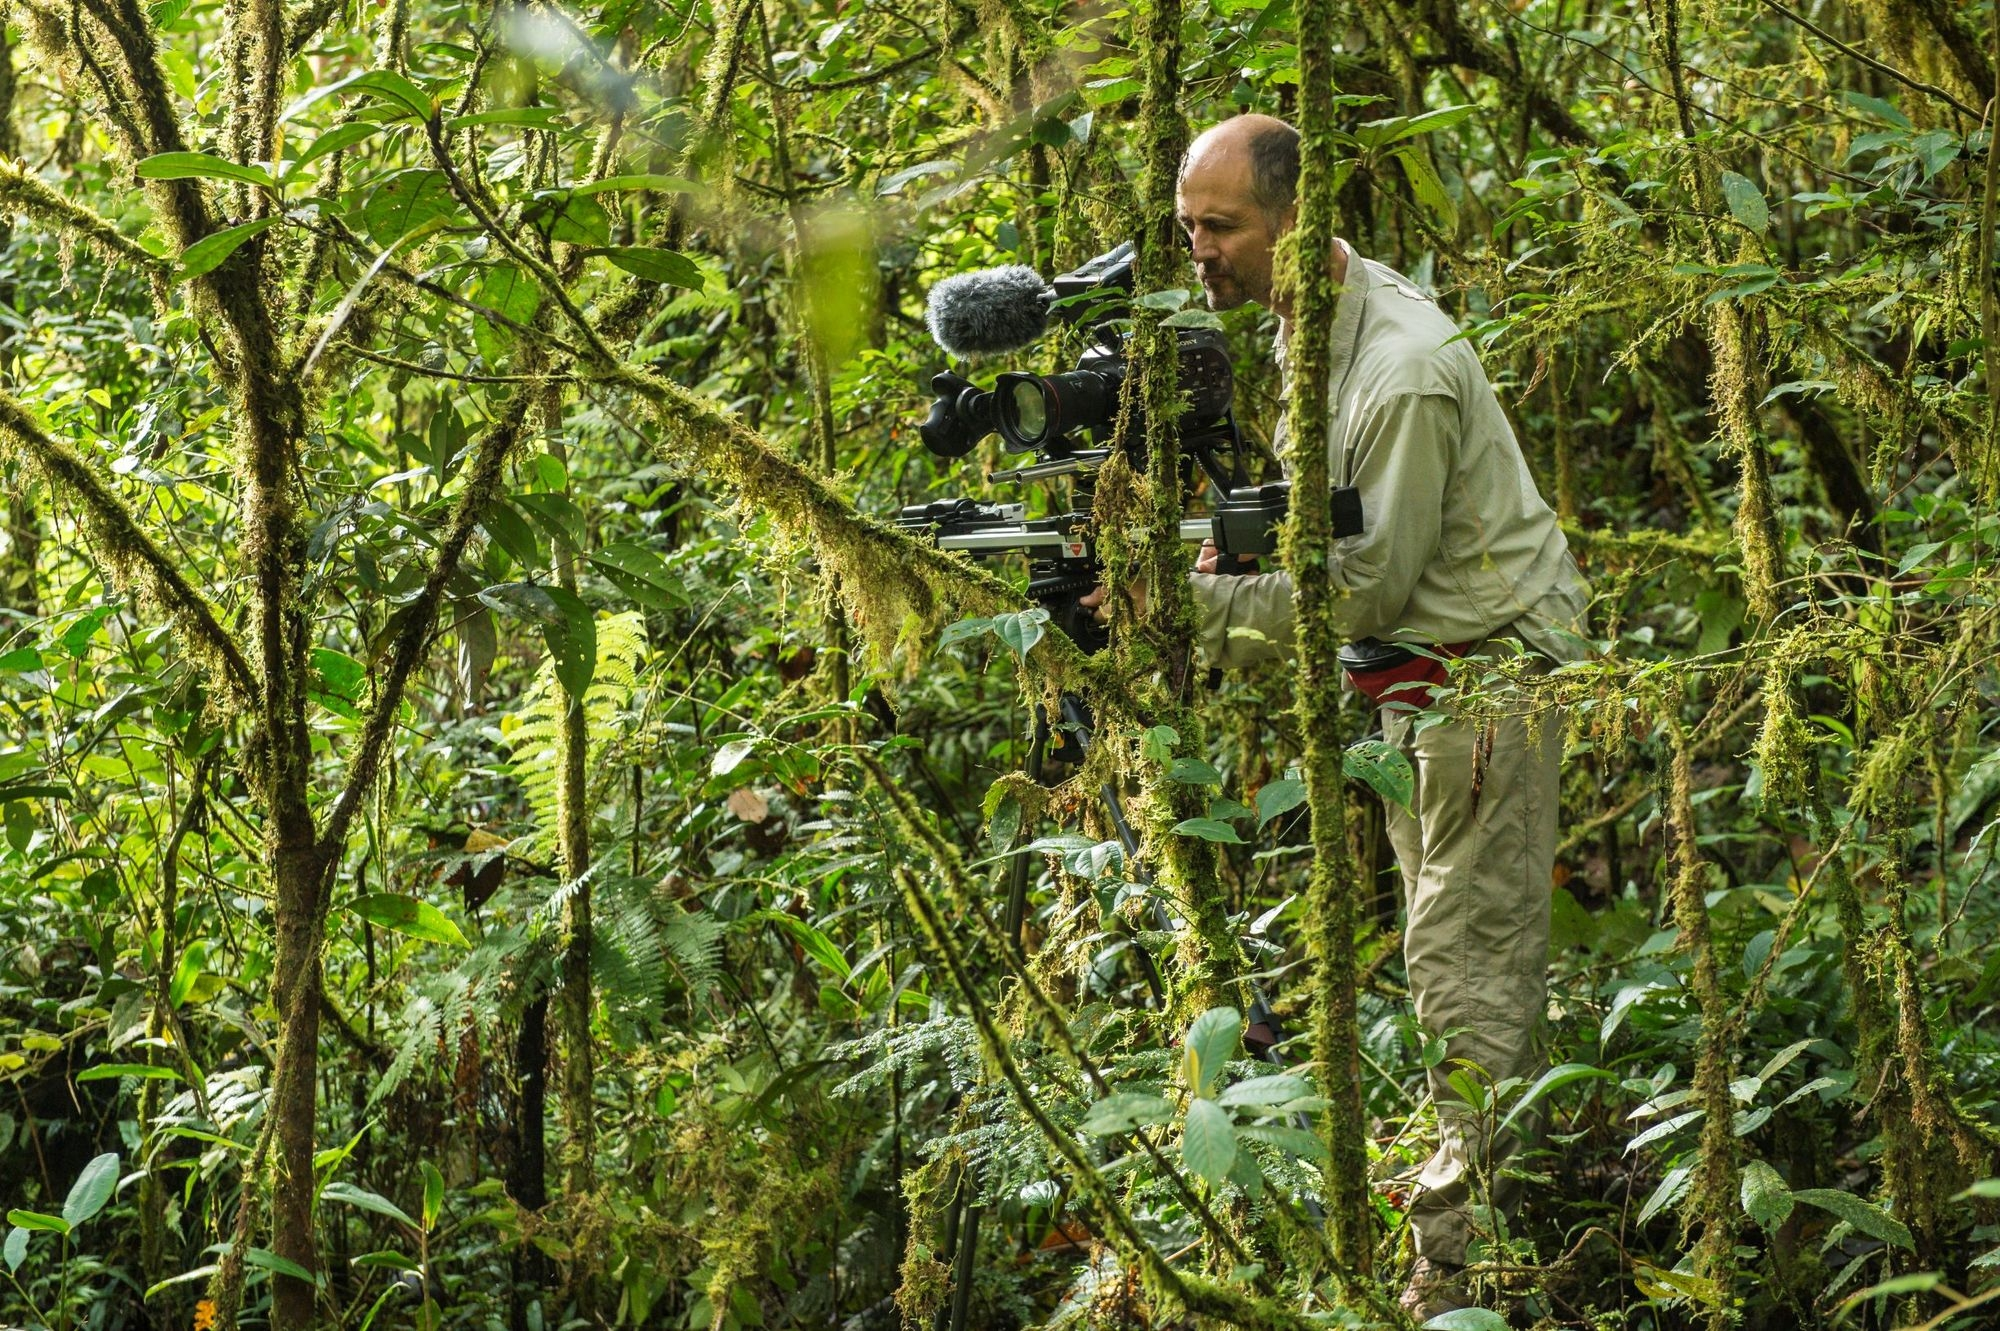 film, documentaire, nature, écologie, luc marescot, Francis halle, crowdfunding, campagne,